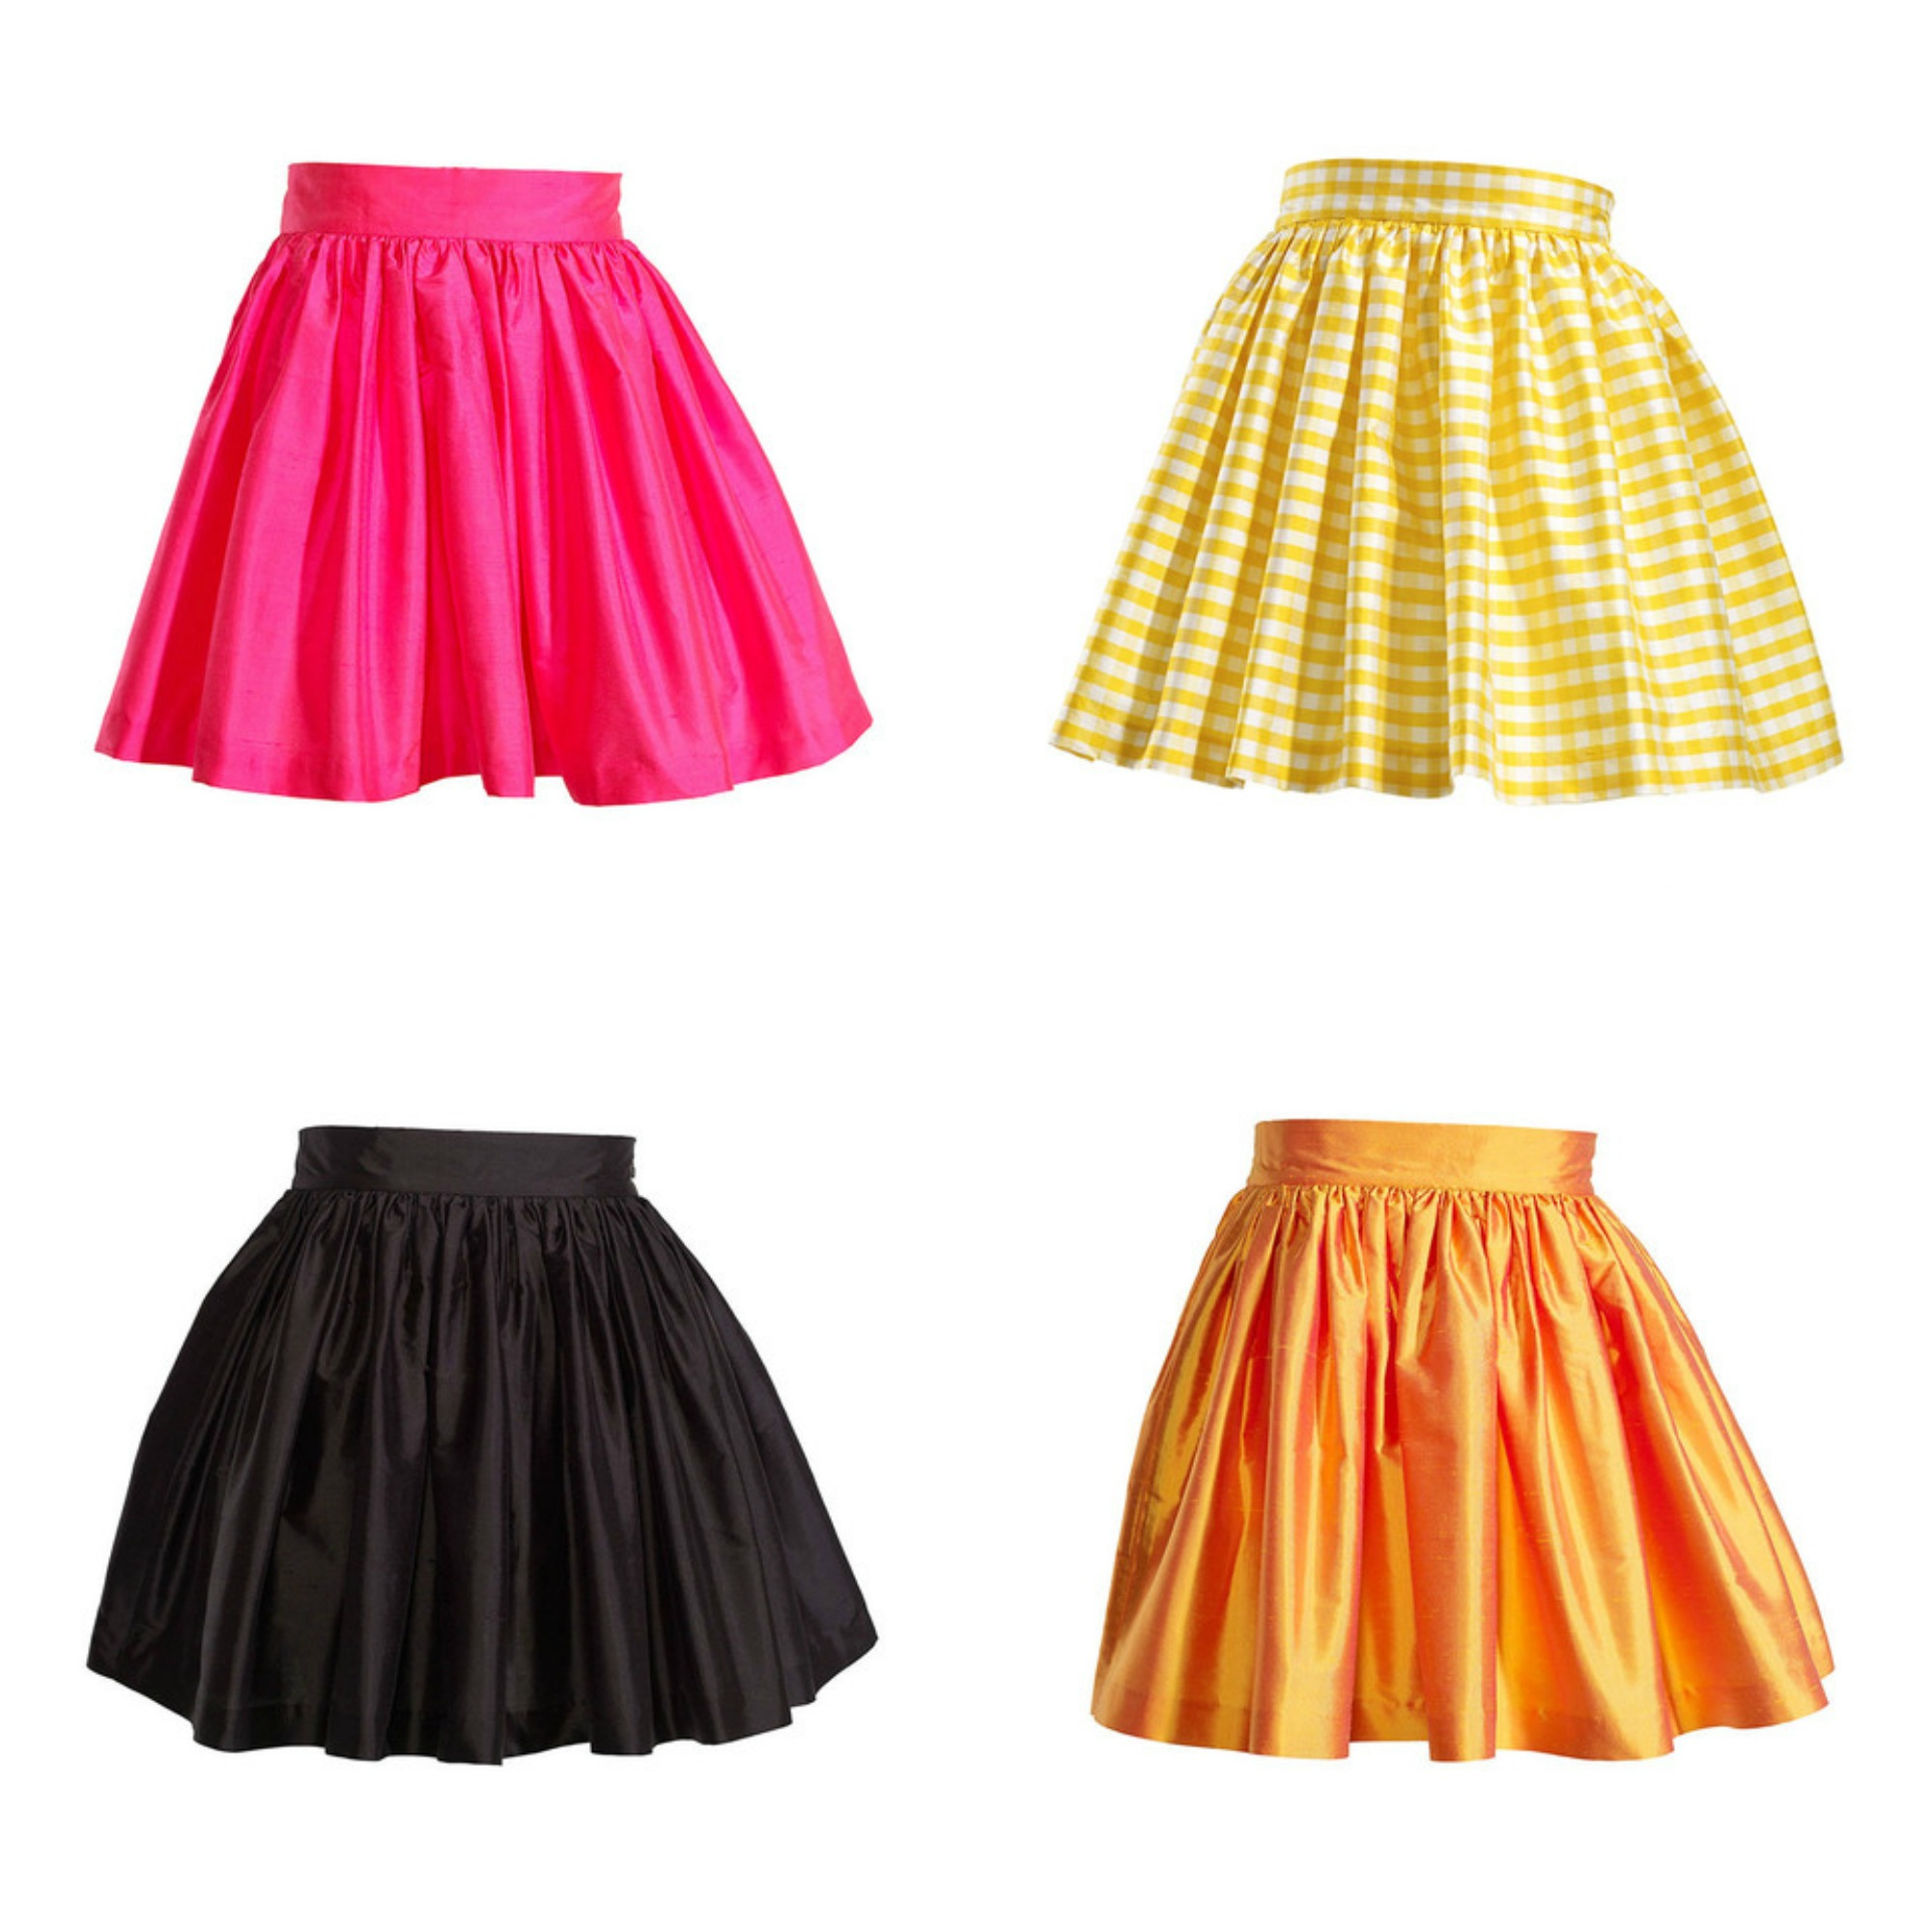 party skirt collage